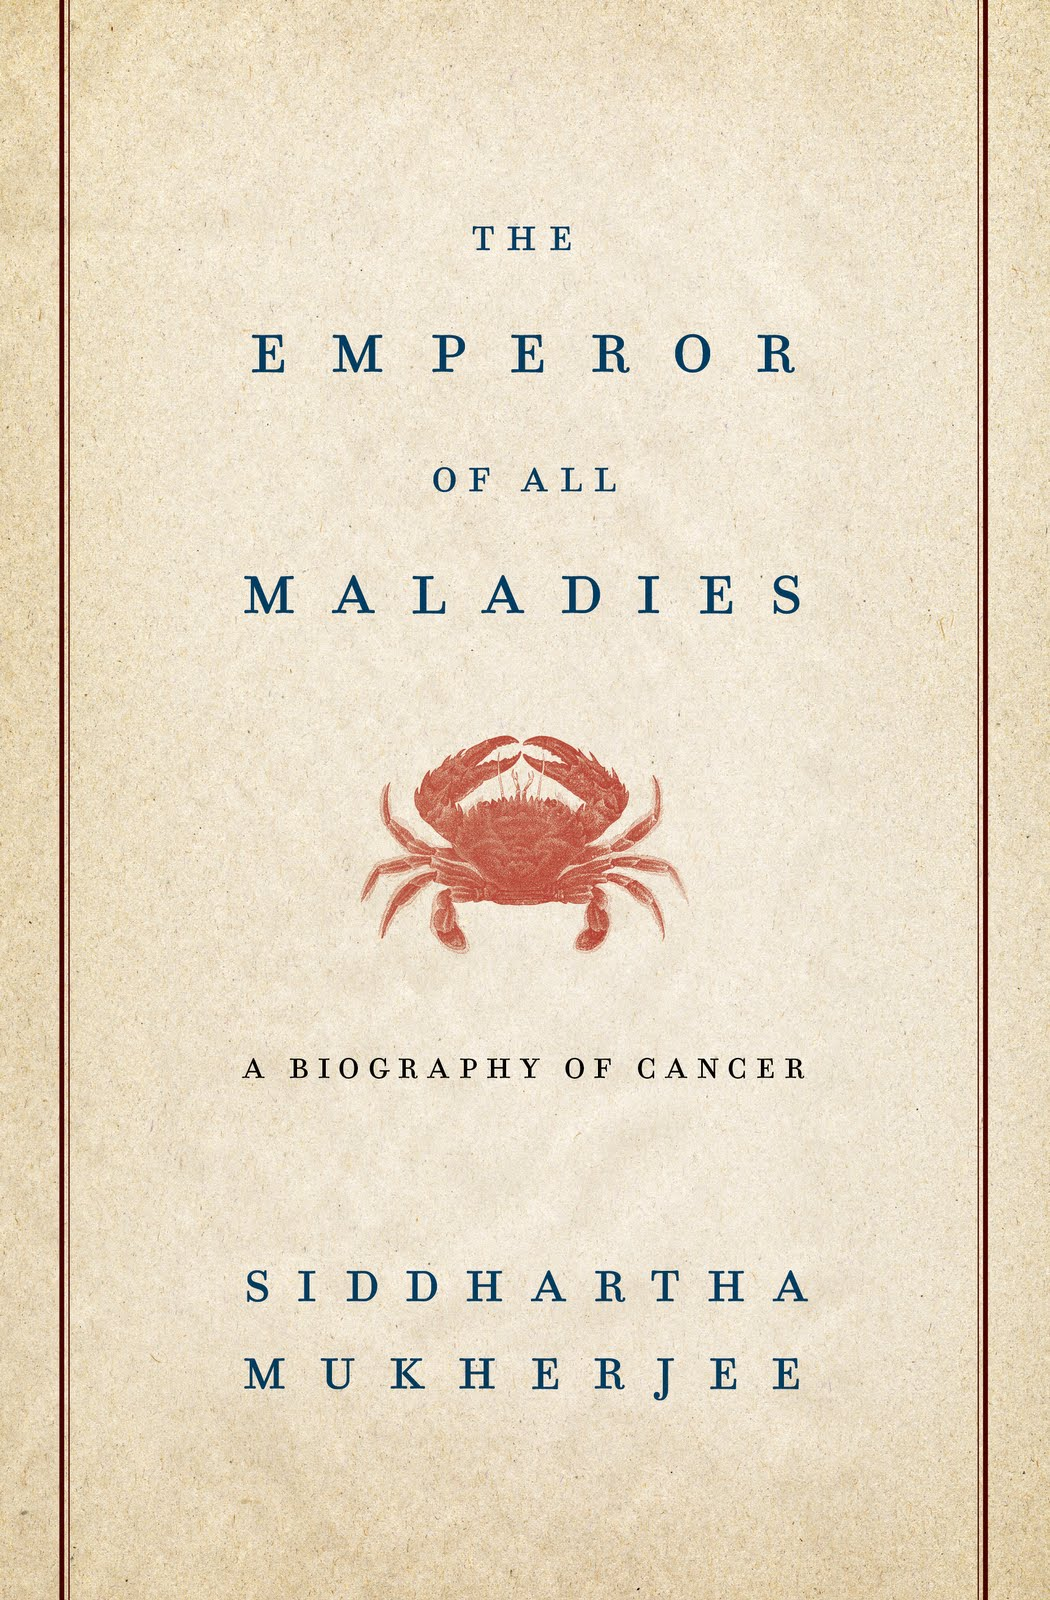 THE EMPEROR OF MALADIES by Siddhartha Mukherjee: Book 15 of 2011 – Dear Thursday [BEST OF FaN]